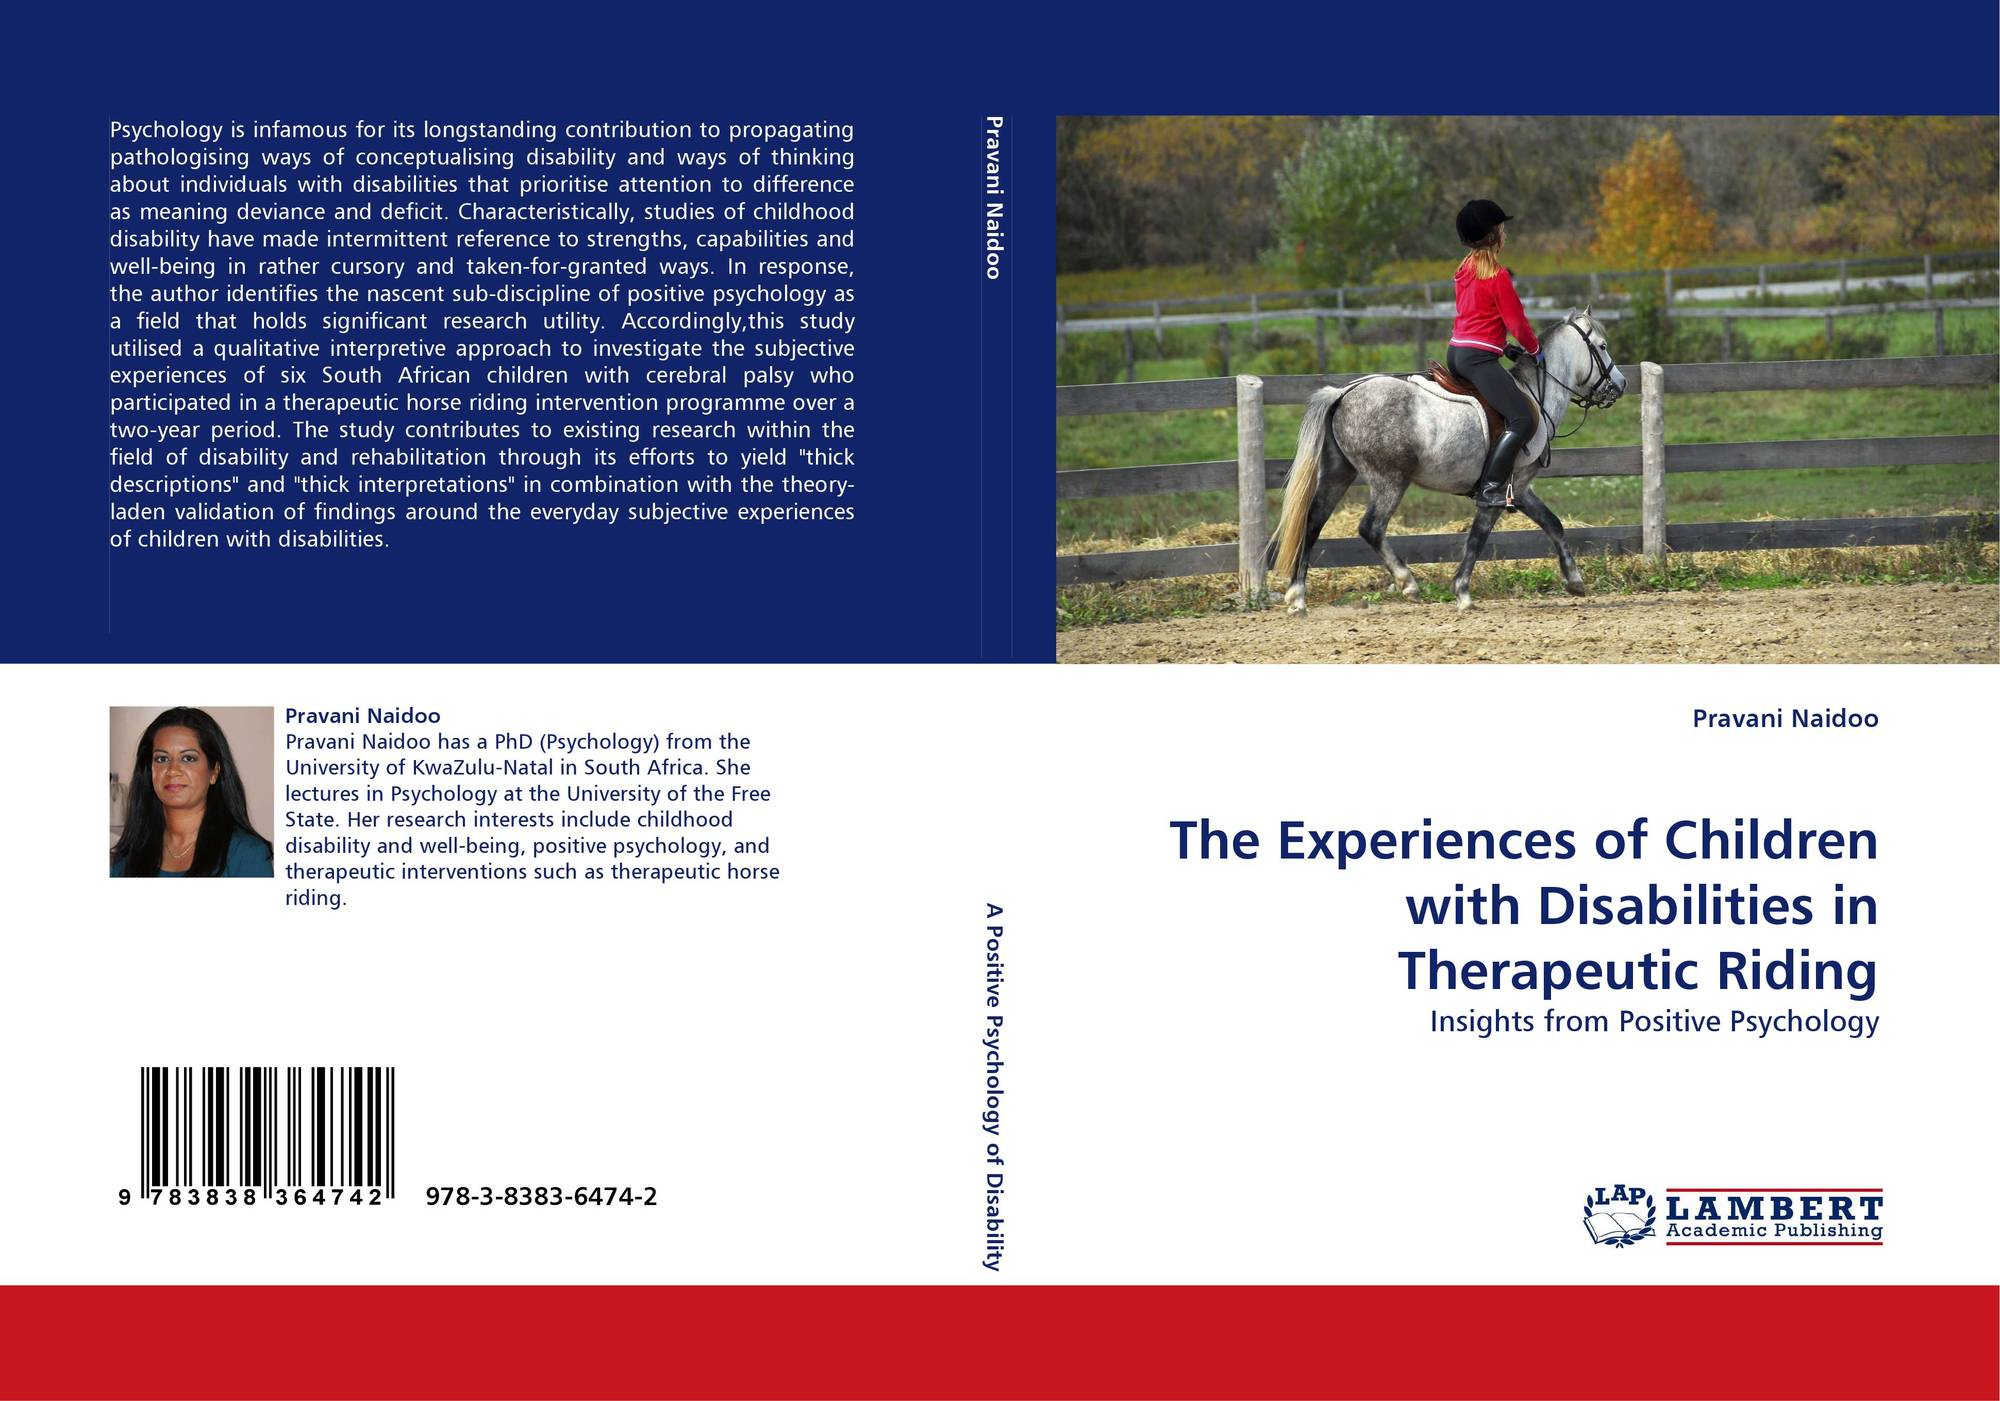 an introduction to therapeutic riding